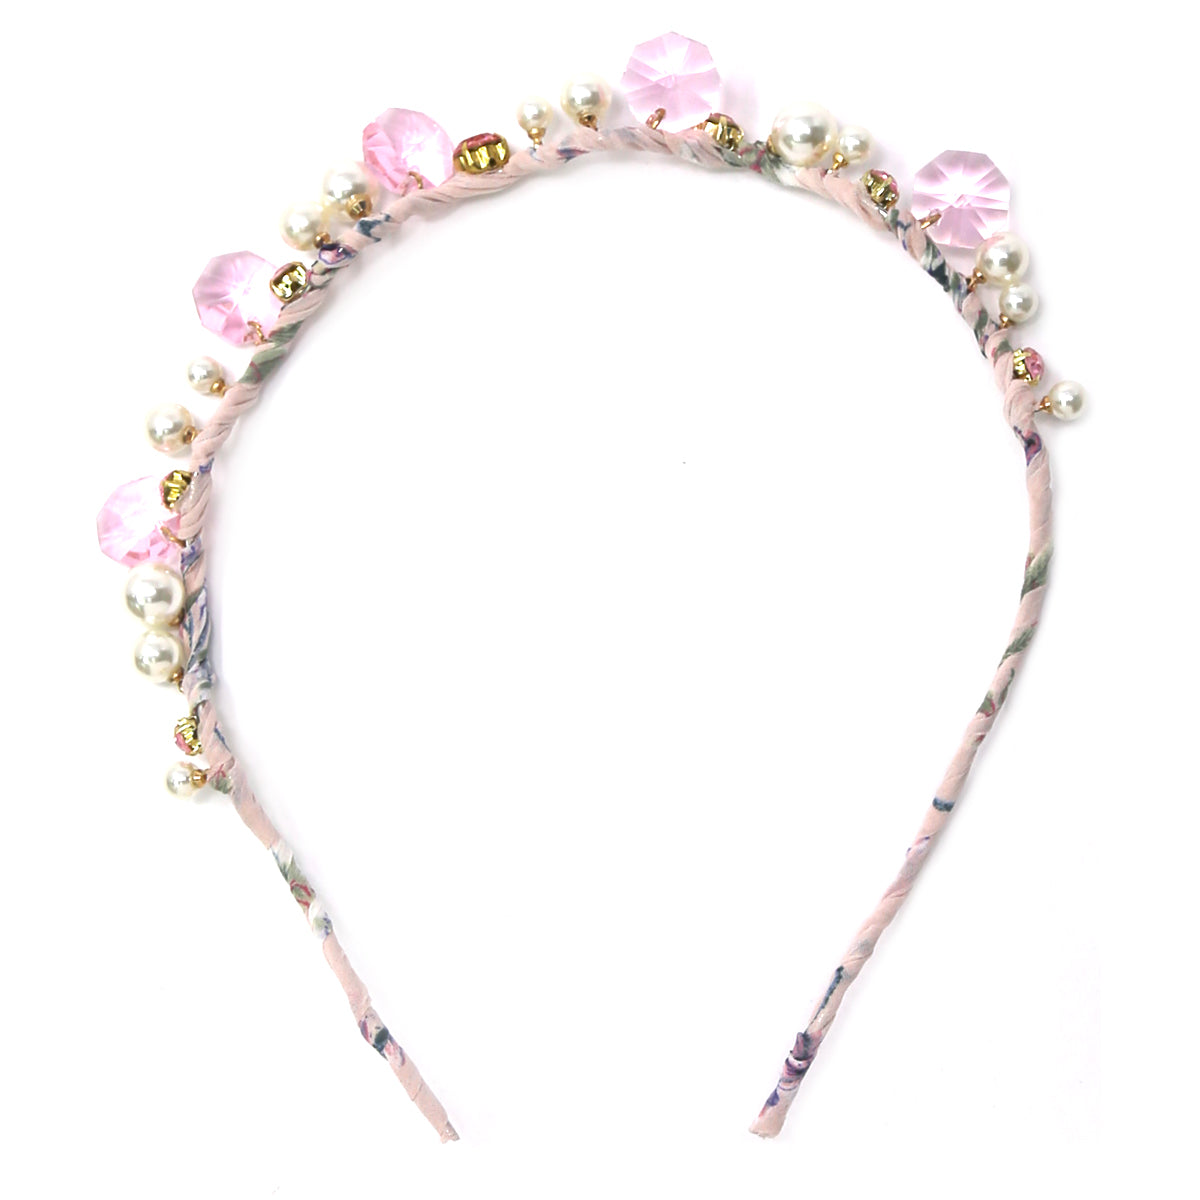 Glass Stone Pearl Bead Embellished Fabric Wrapped Headband